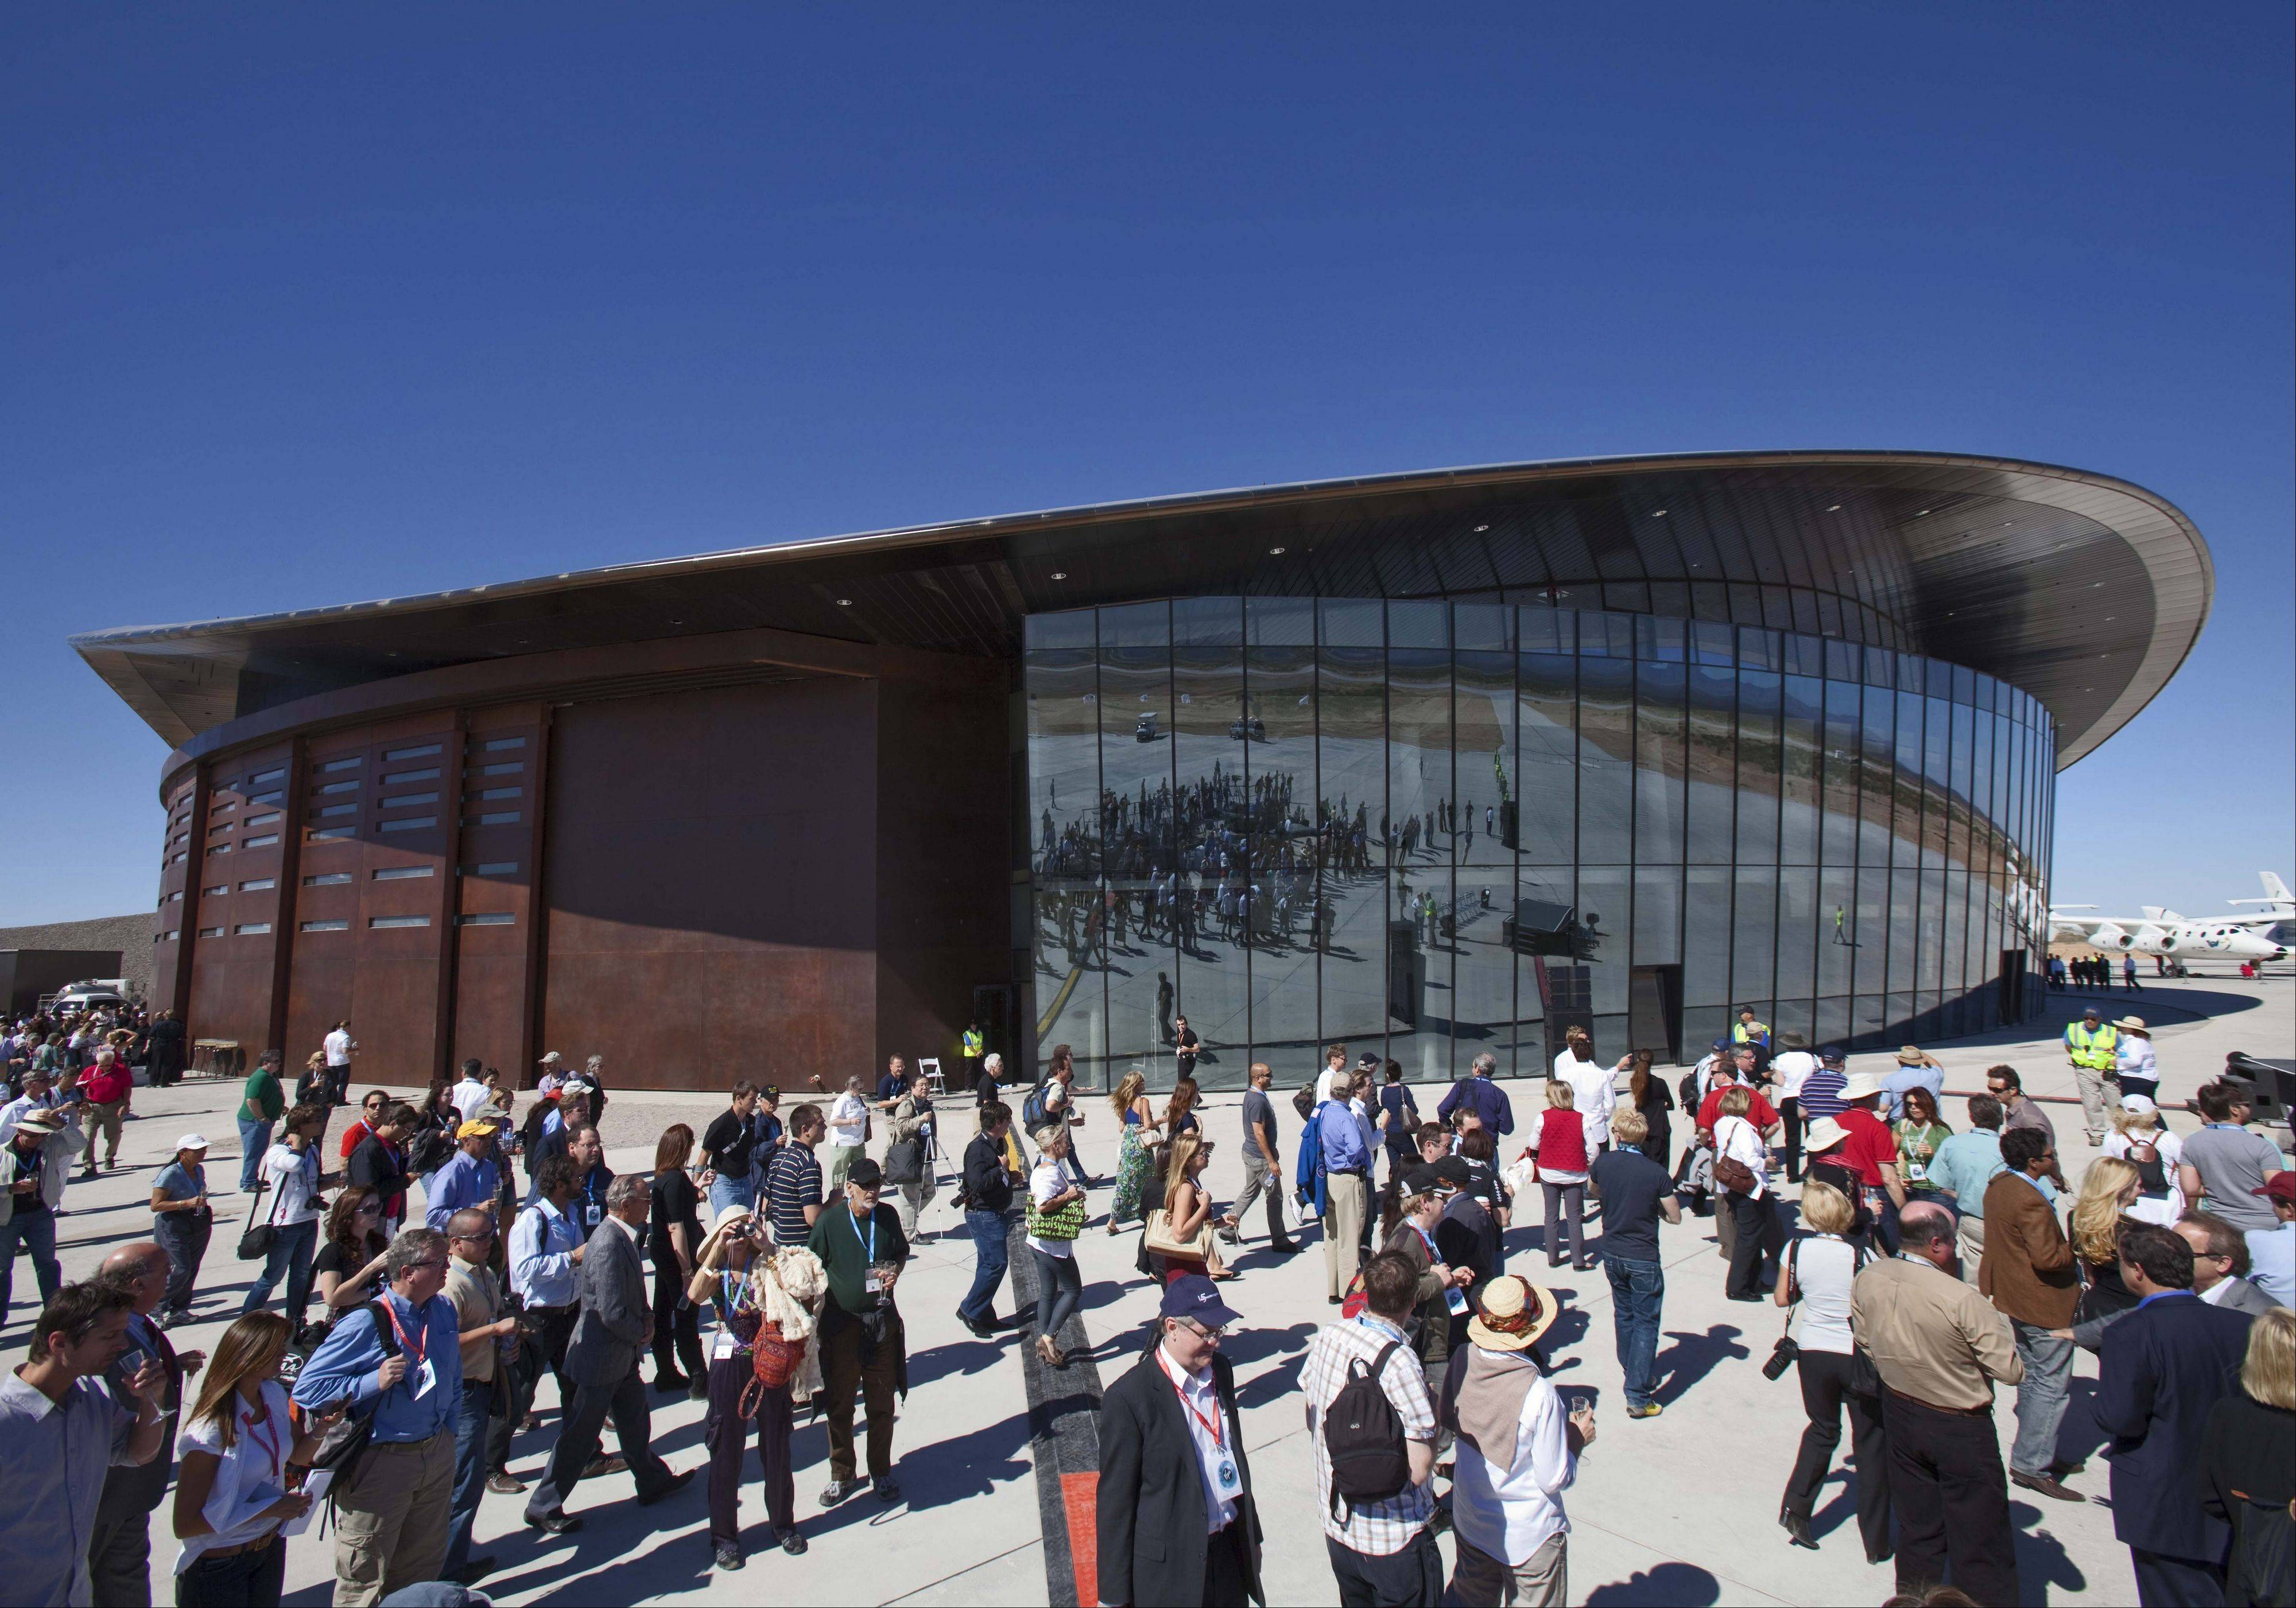 Associated Press/Oct. 17, 2011Guests stand outside the new Spaceport America hangar in Upham, N.M.